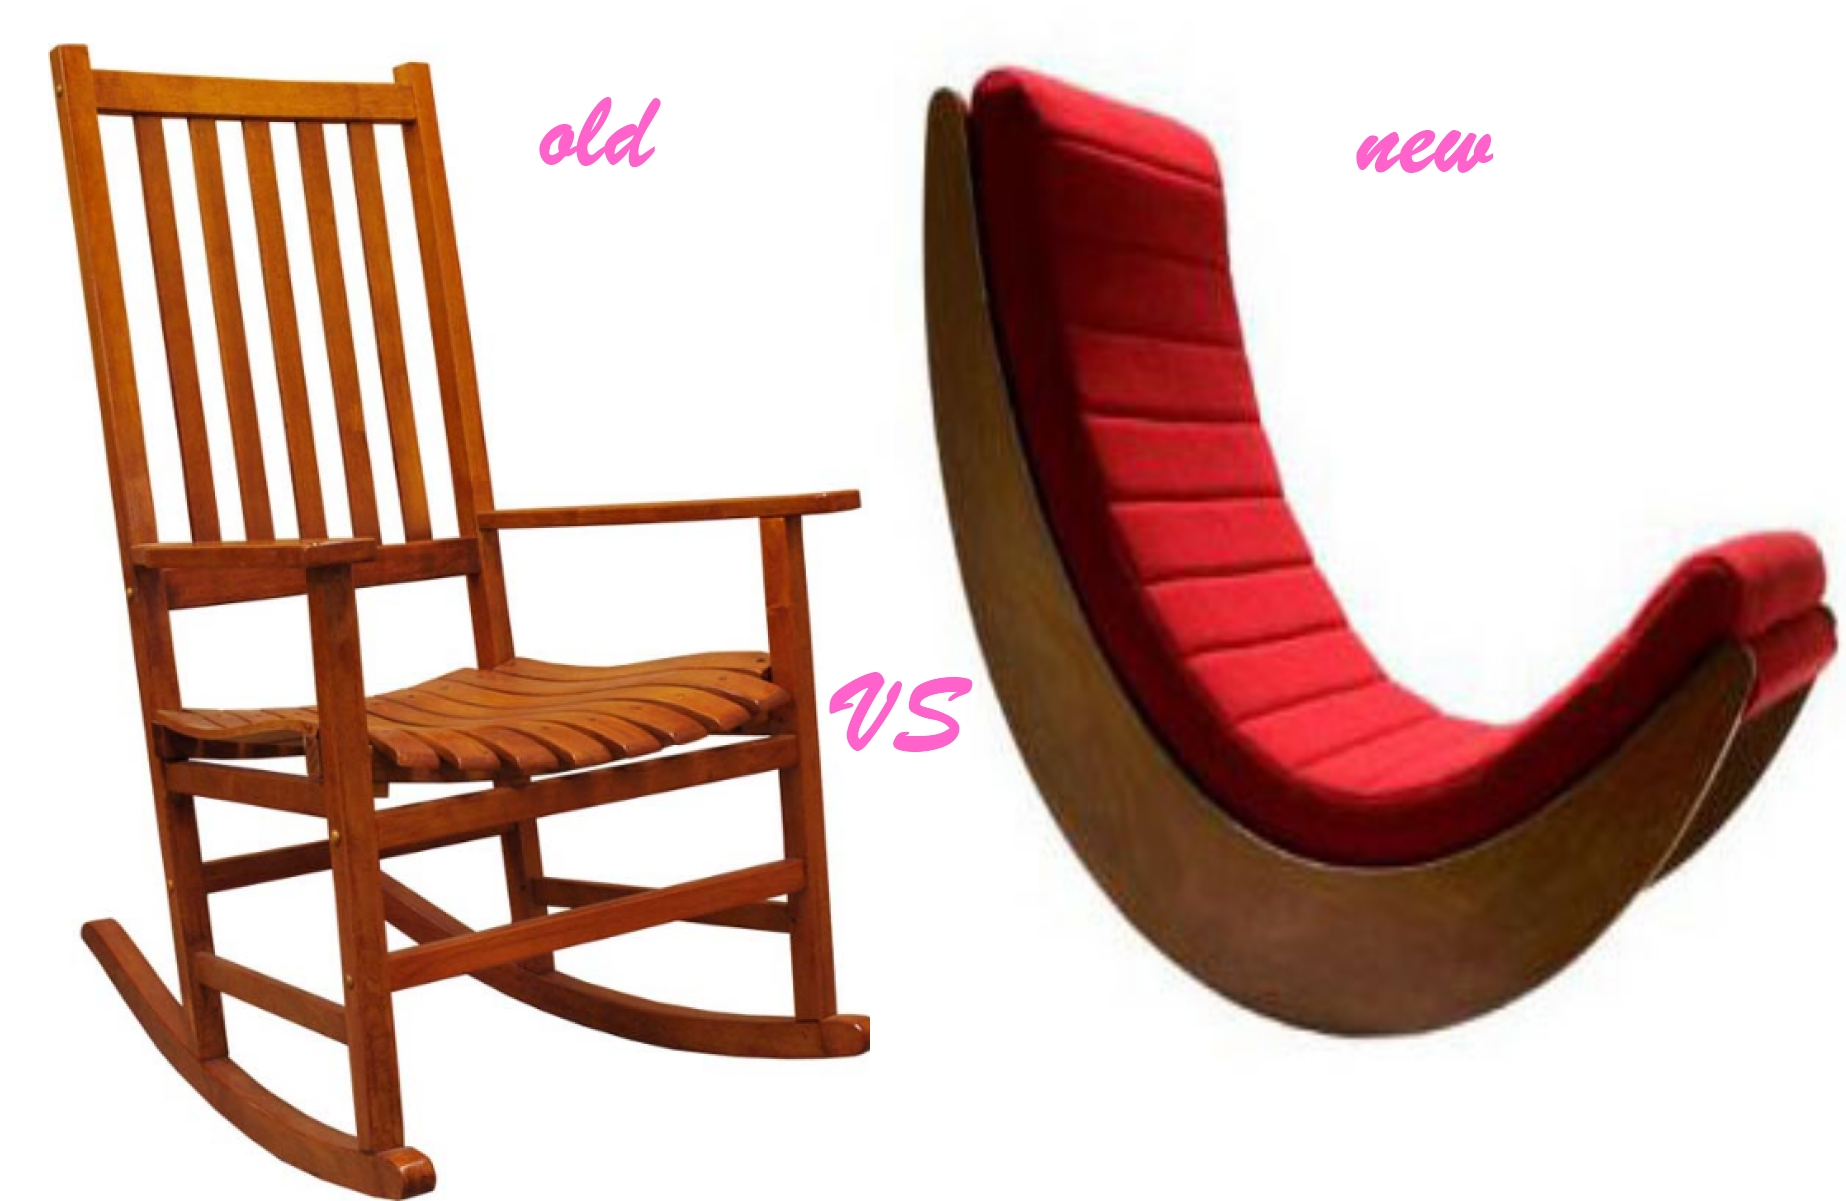 ... Benjamin Franklin was the inventor of rocking chairs, they were